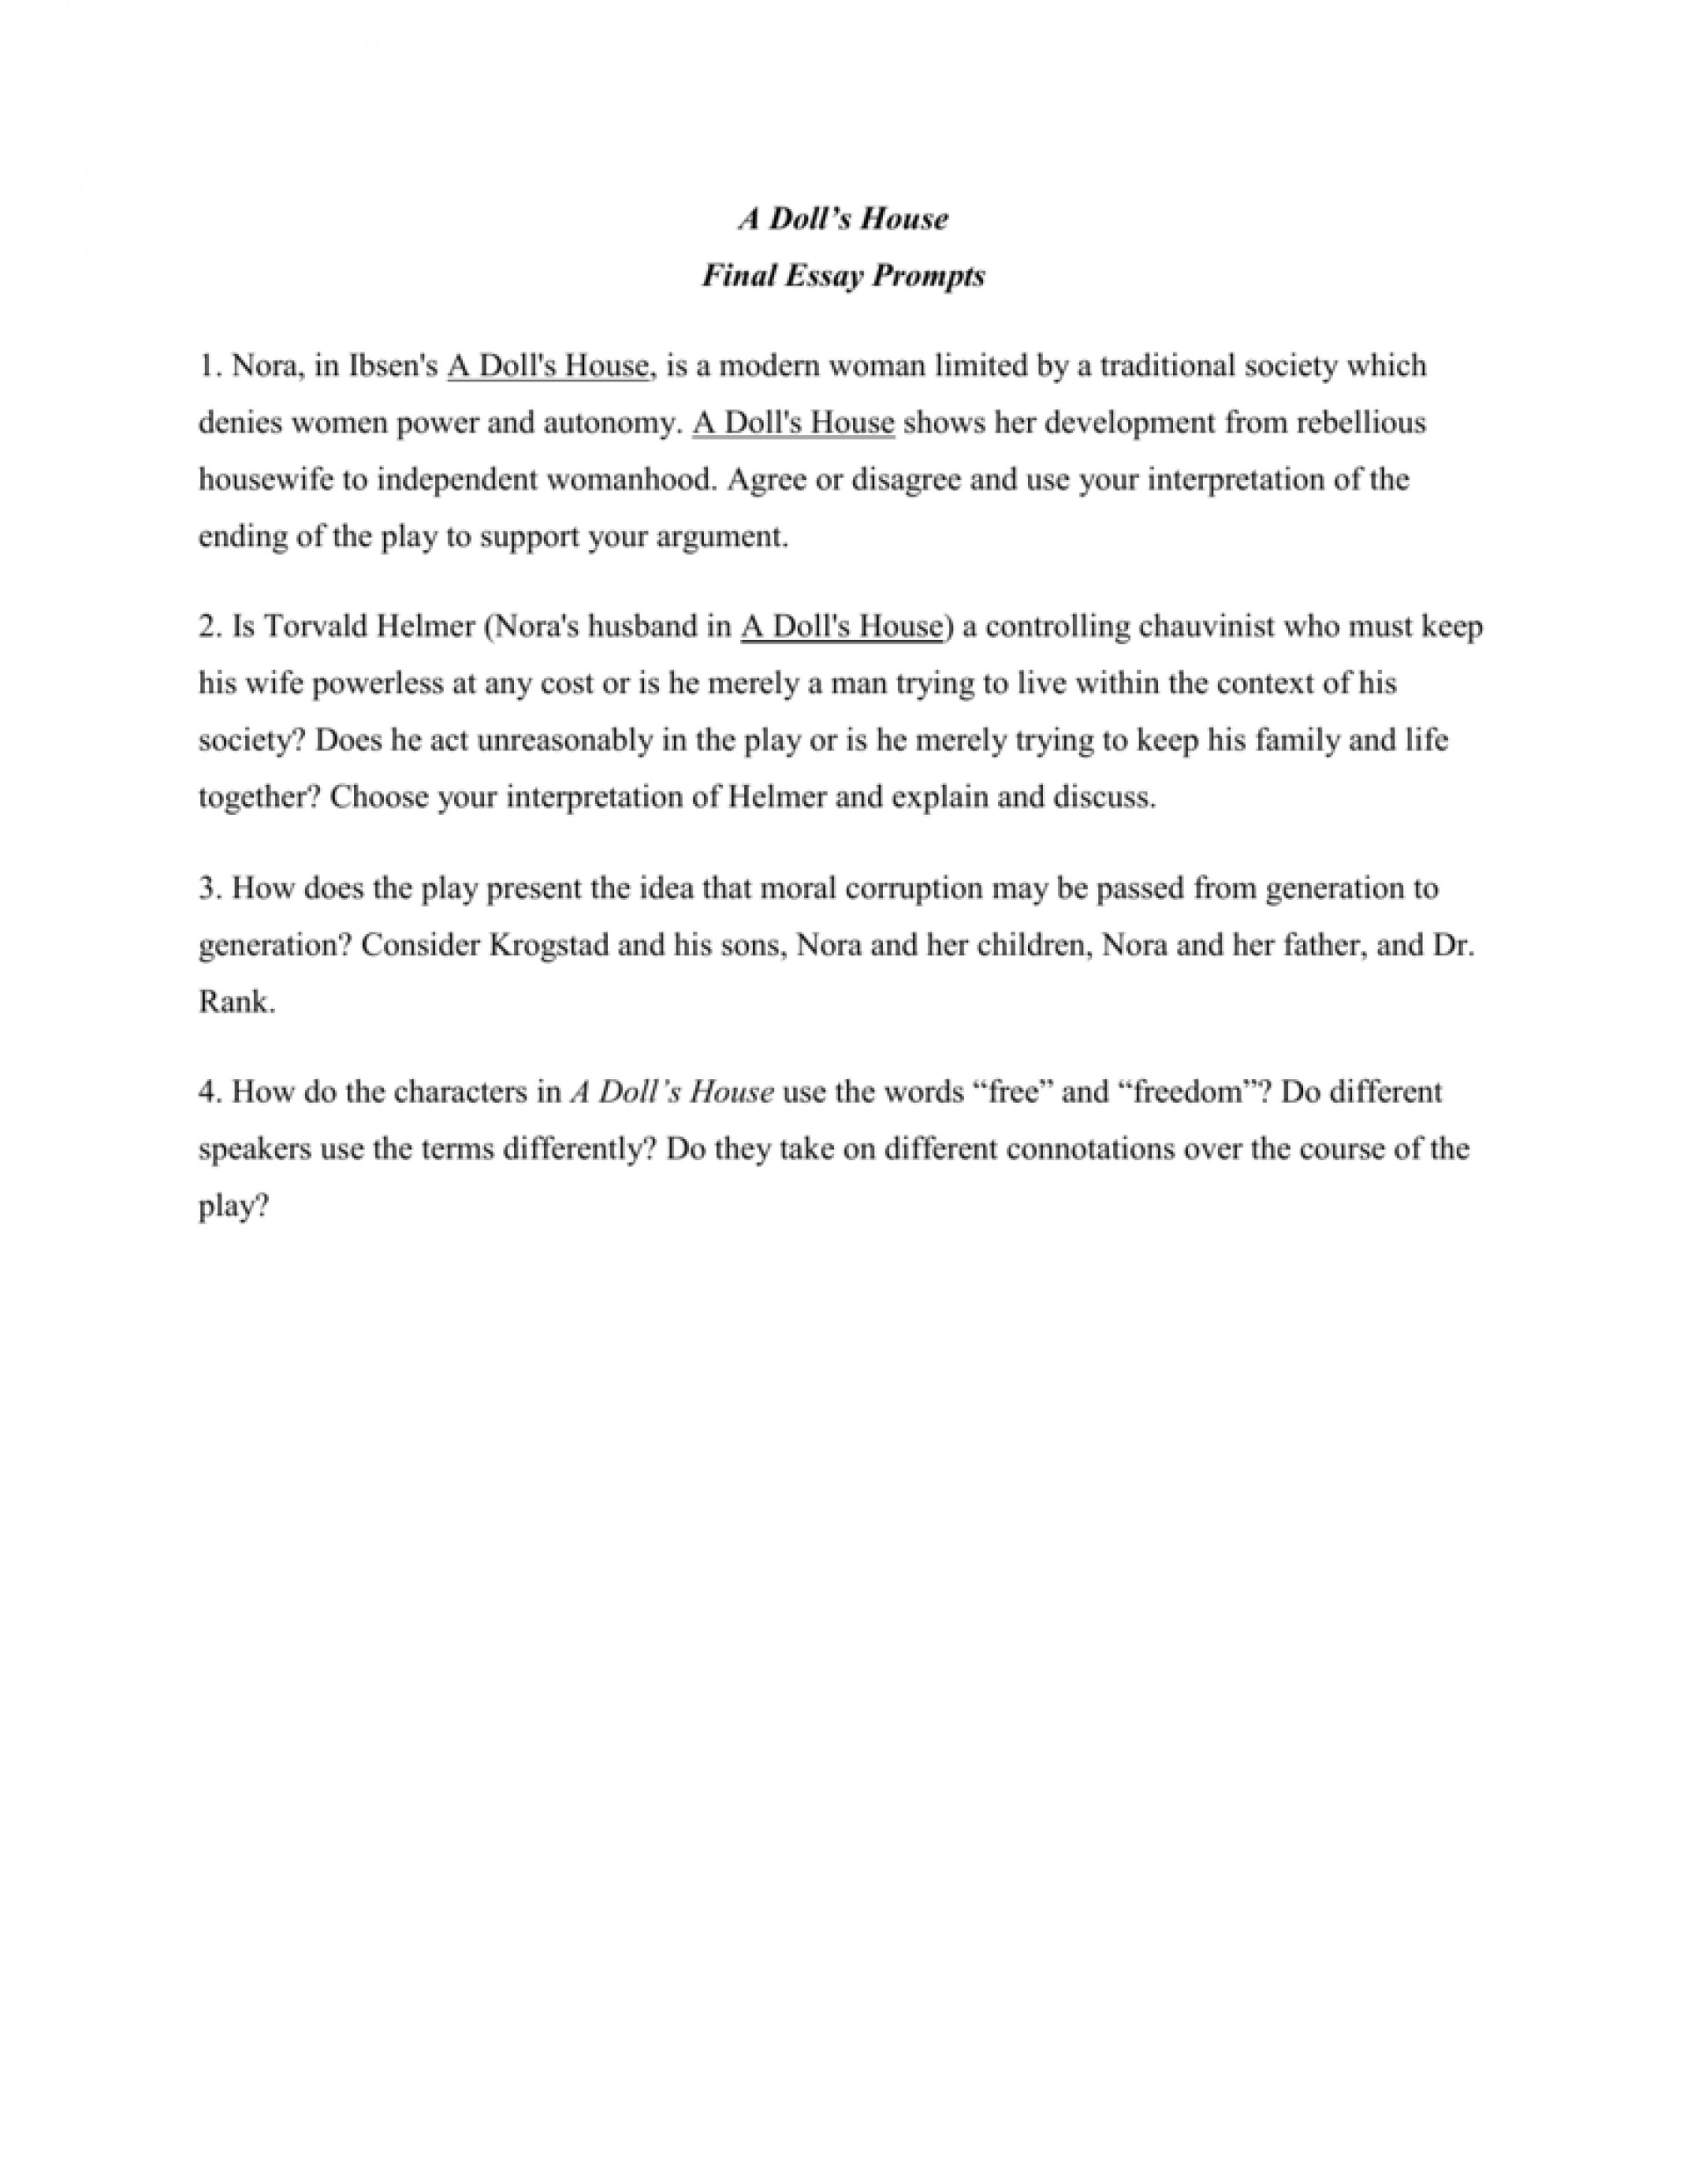 002 Essay Example 008012039 1 Dolls Breathtaking A House Doll's Titles Act 2 Discussion Questions Topics 1920